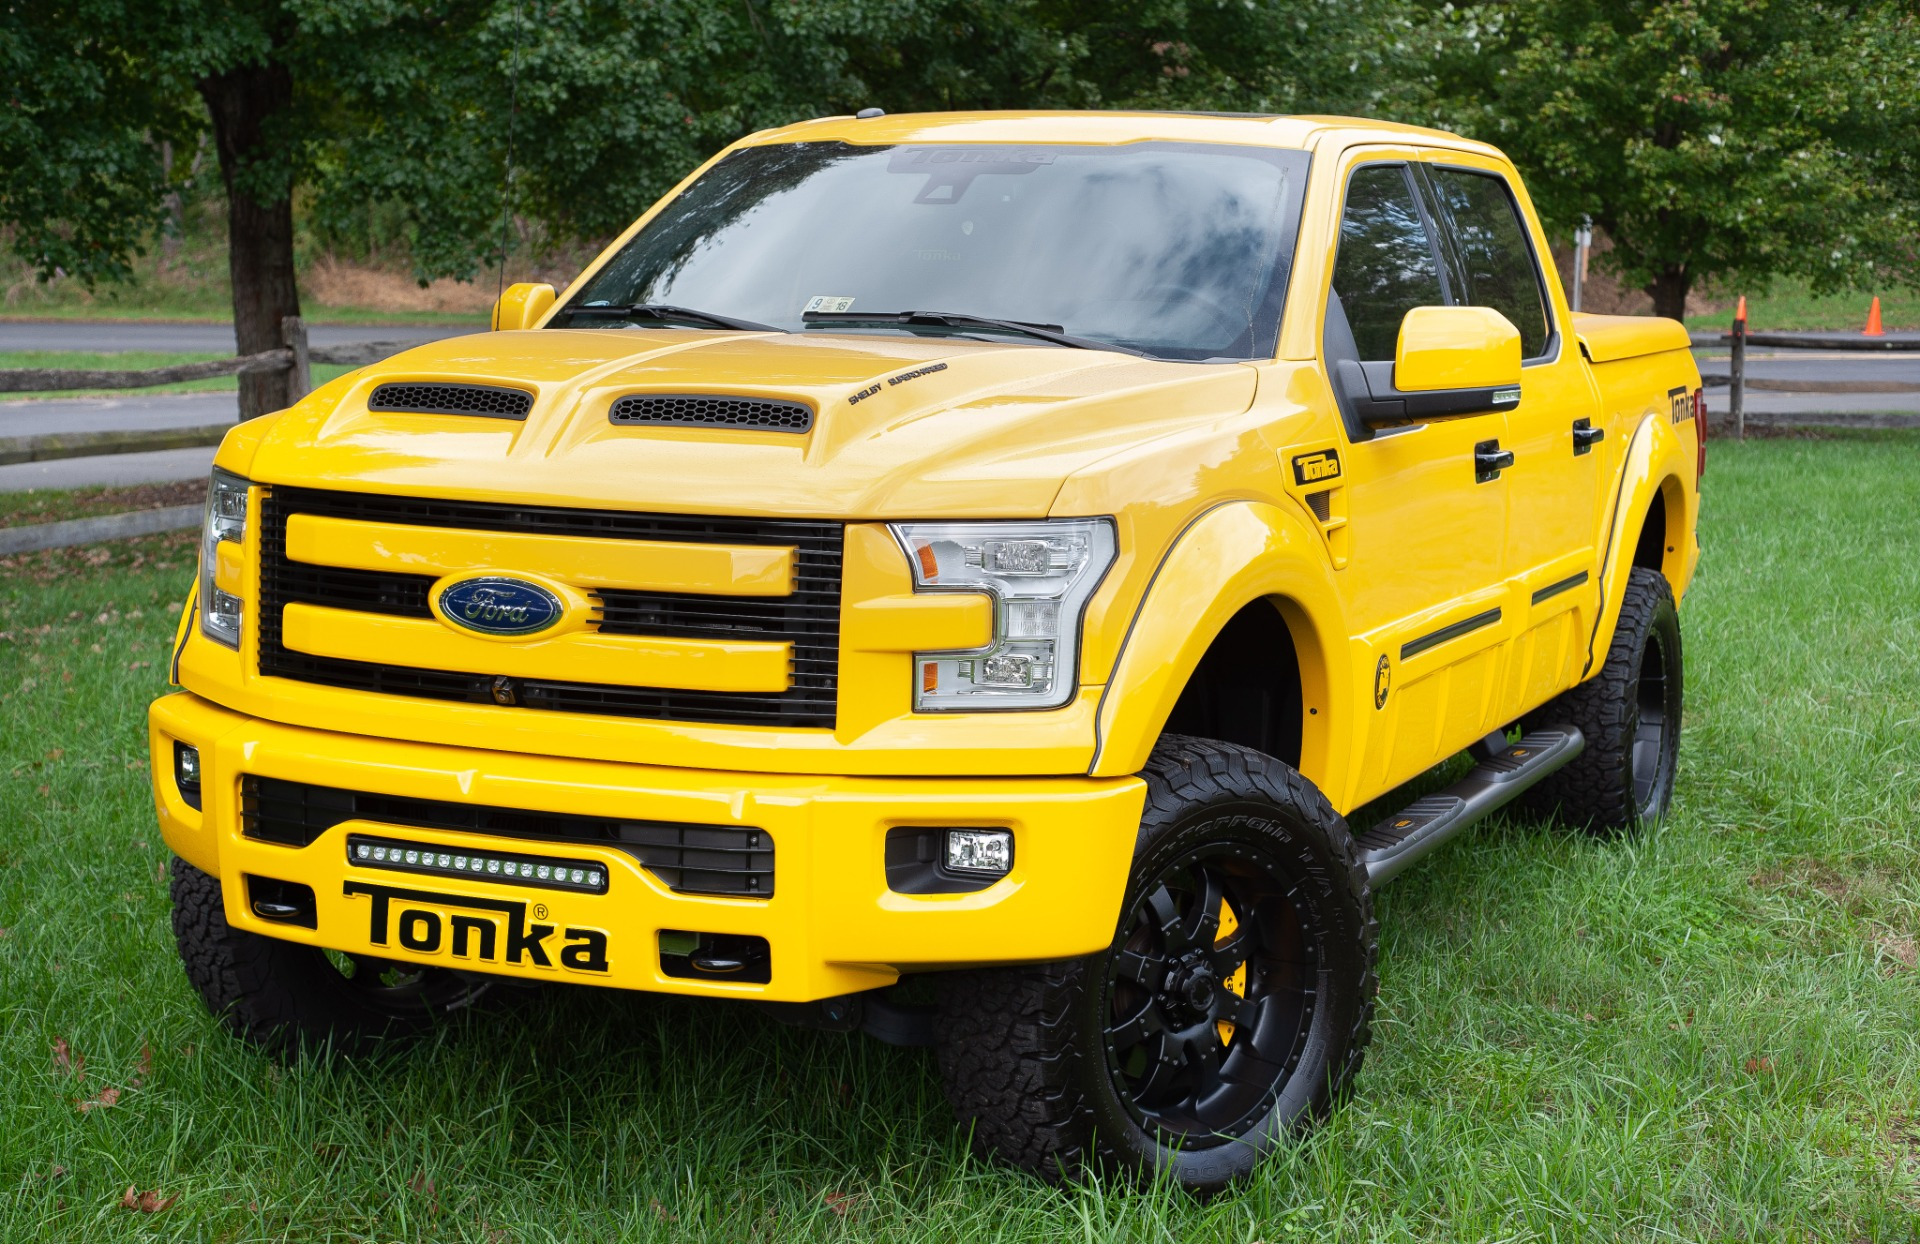 2016 Ford F 150 Tonka Stock Pe27090 For Sale Near Vienna